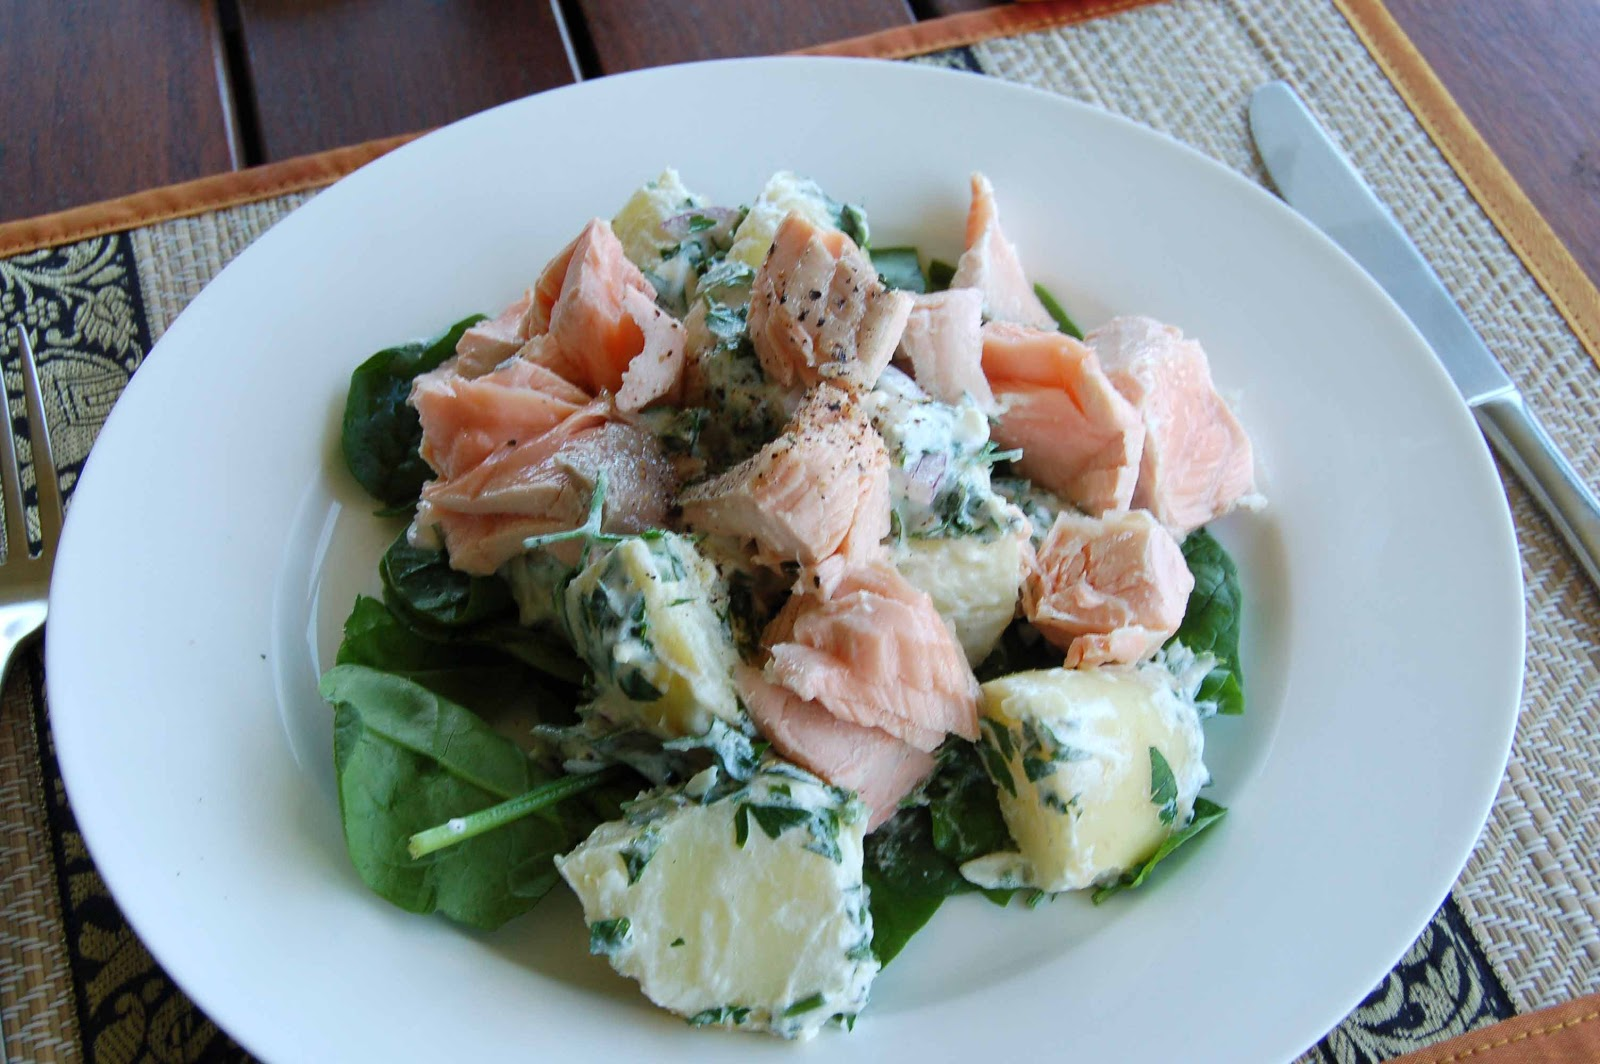 Poached Halibut With Baby Potato Salad Recipes — Dishmaps